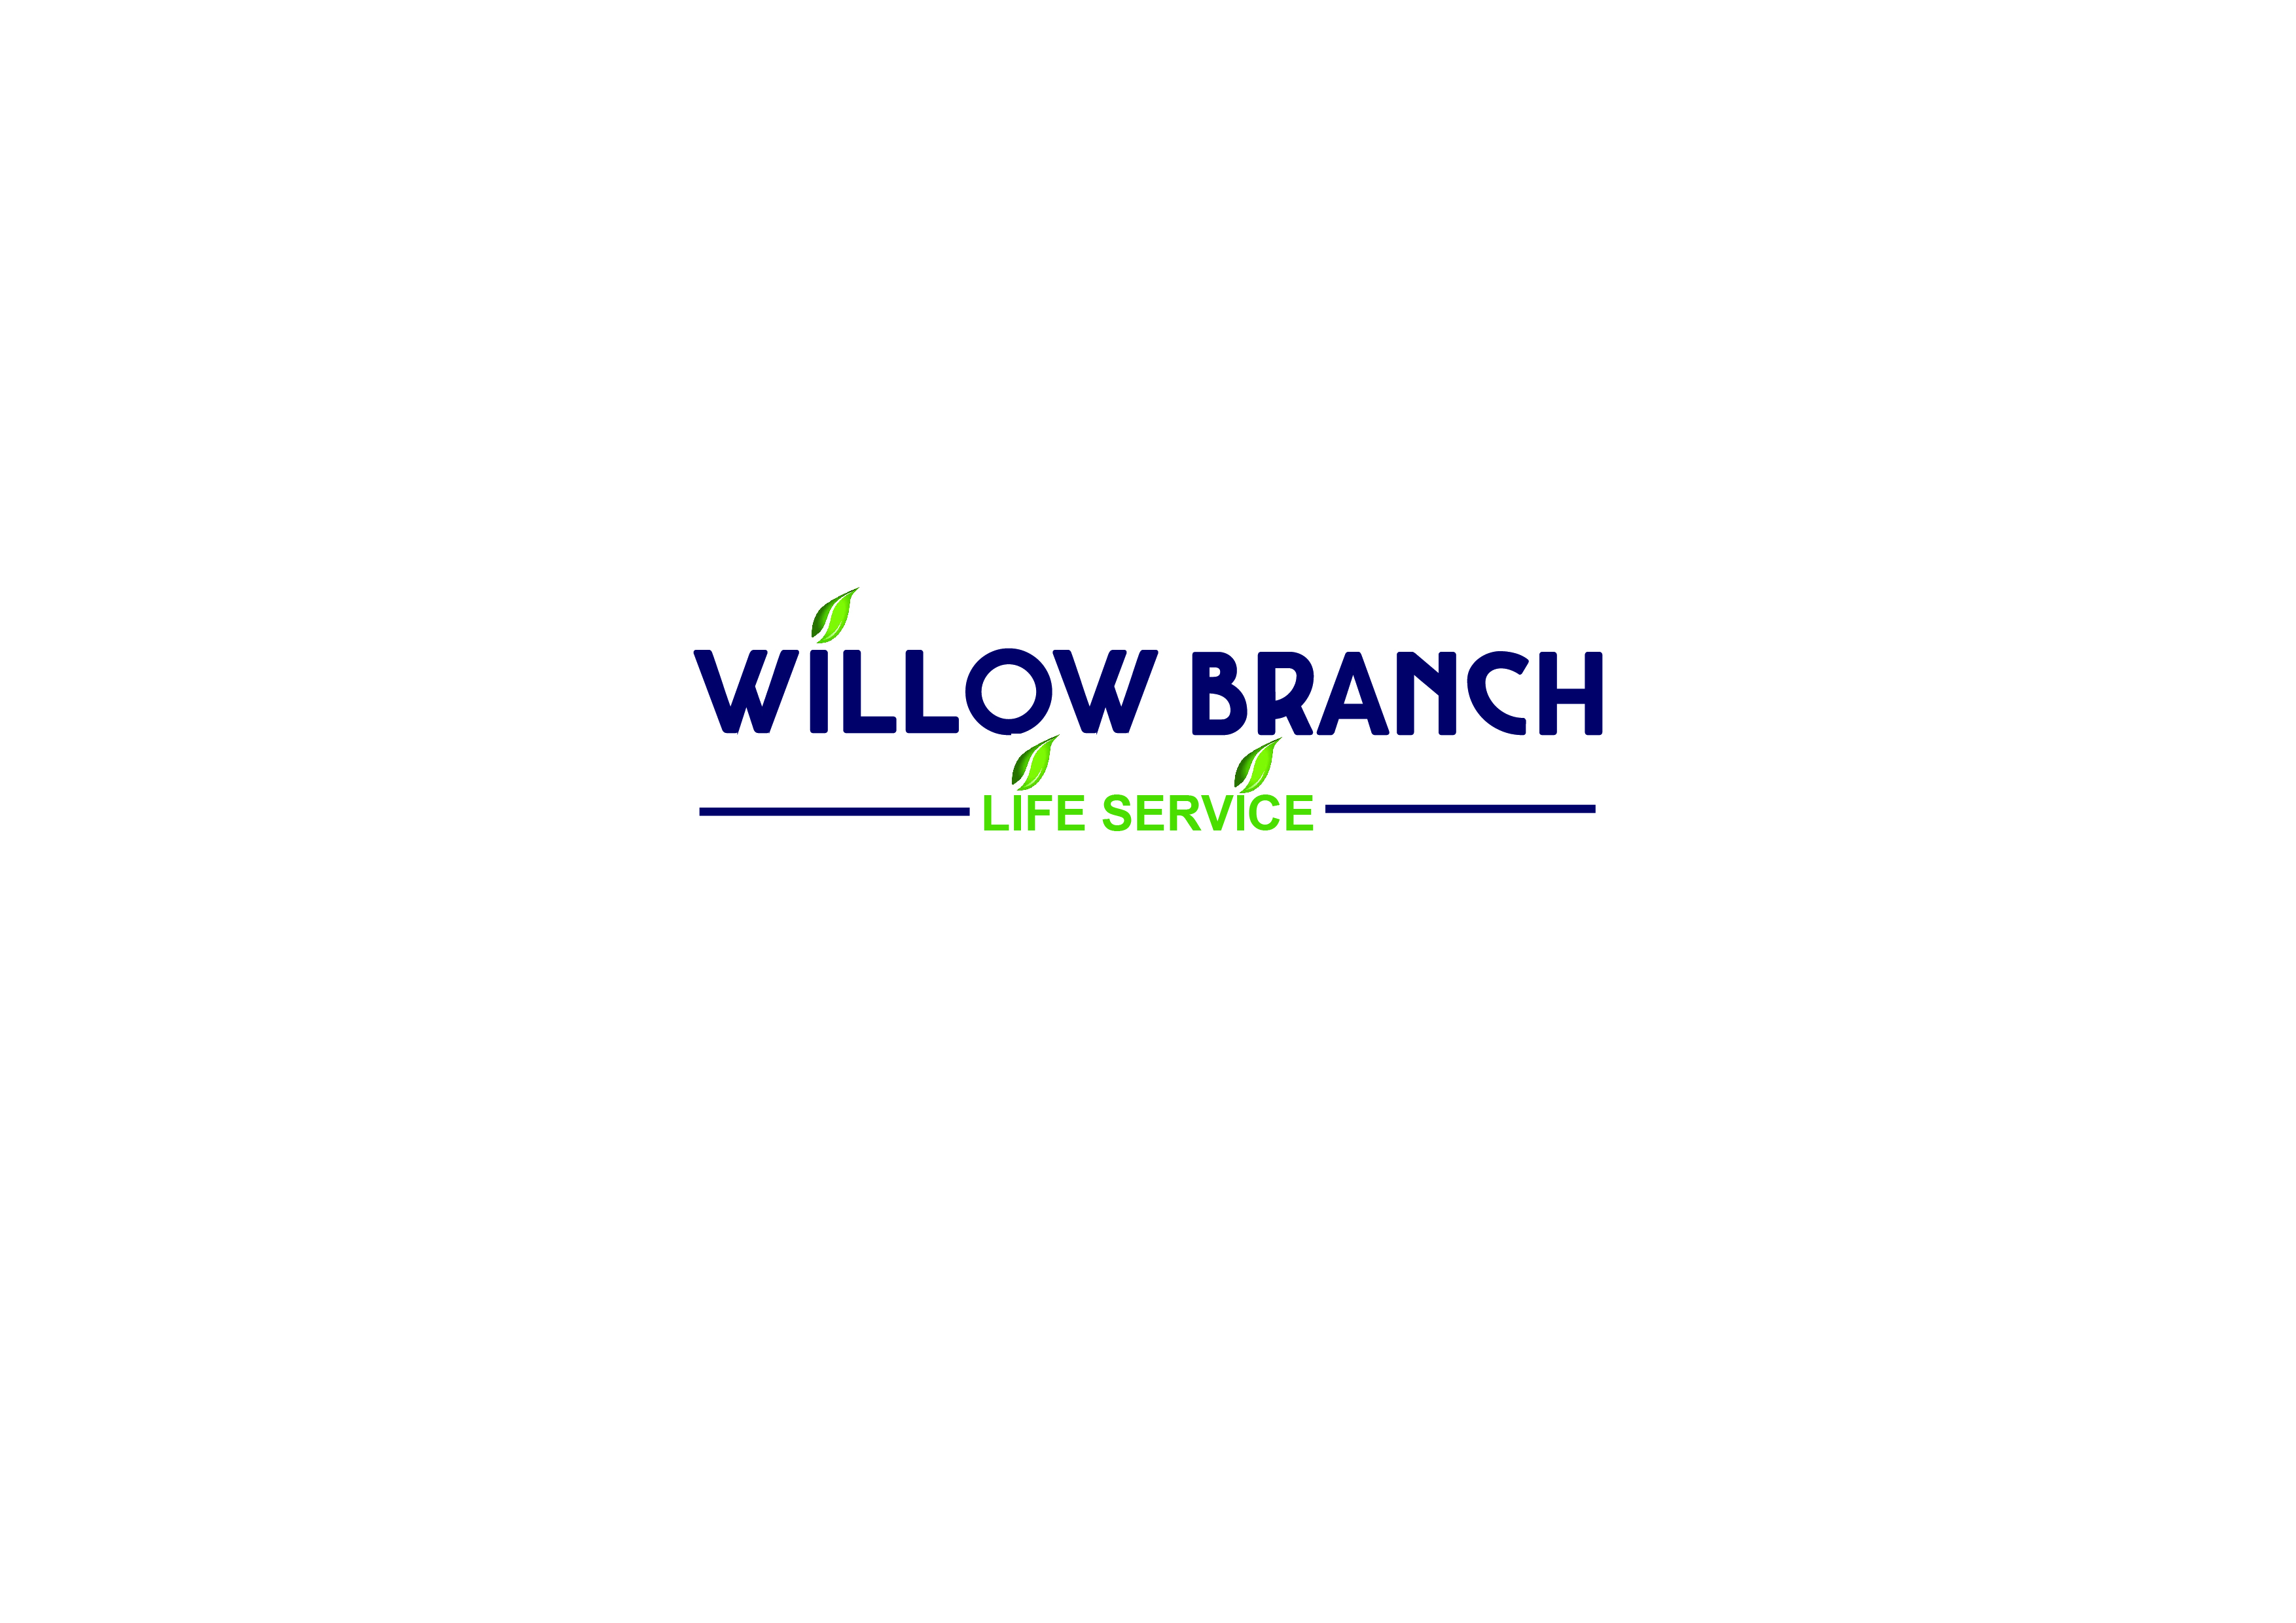 Logo Design by Anum Aamir - Entry No. 97 in the Logo Design Contest Artistic Logo Design for Willow Branch Life Service.